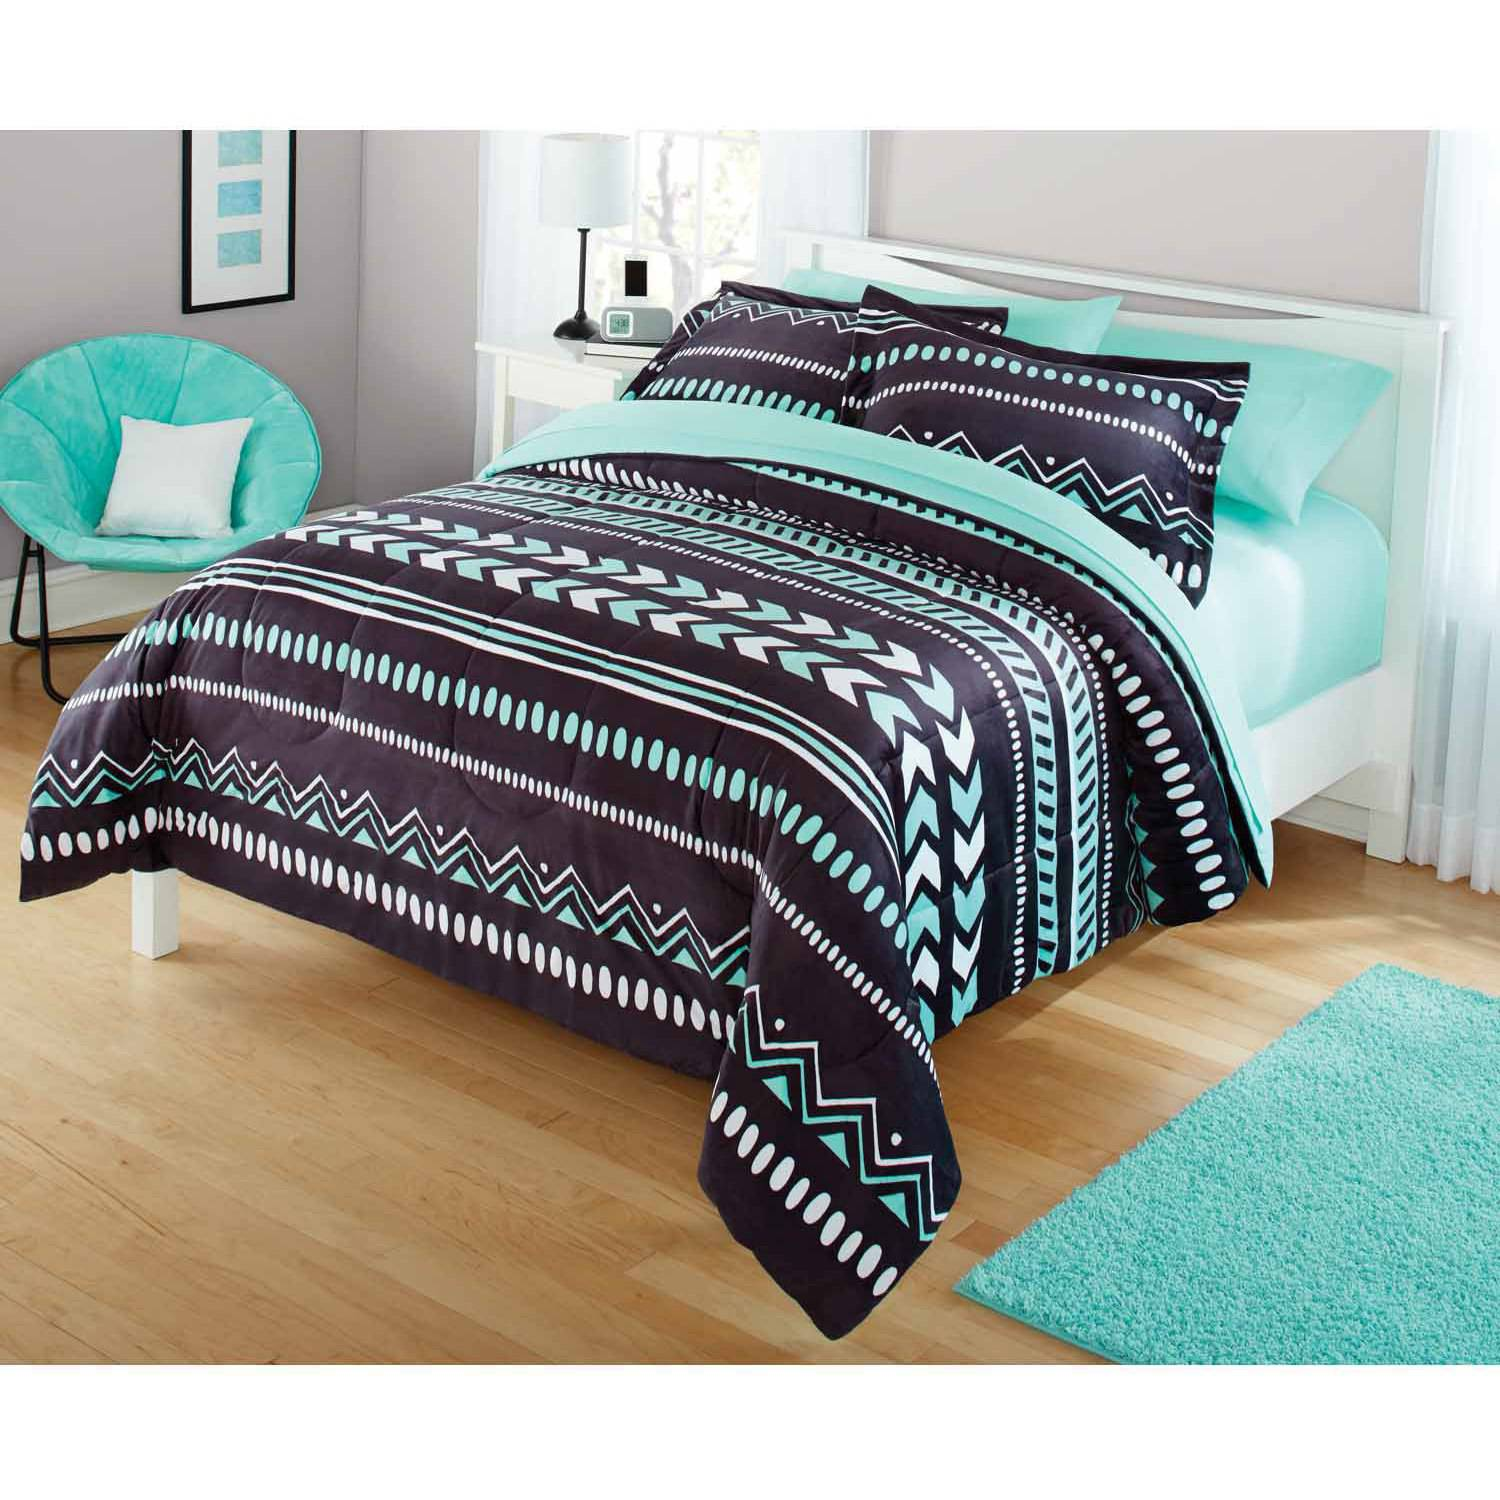 Mainstays Tribal Bed In A Bag Coordinating Bedding Set Walmart Com